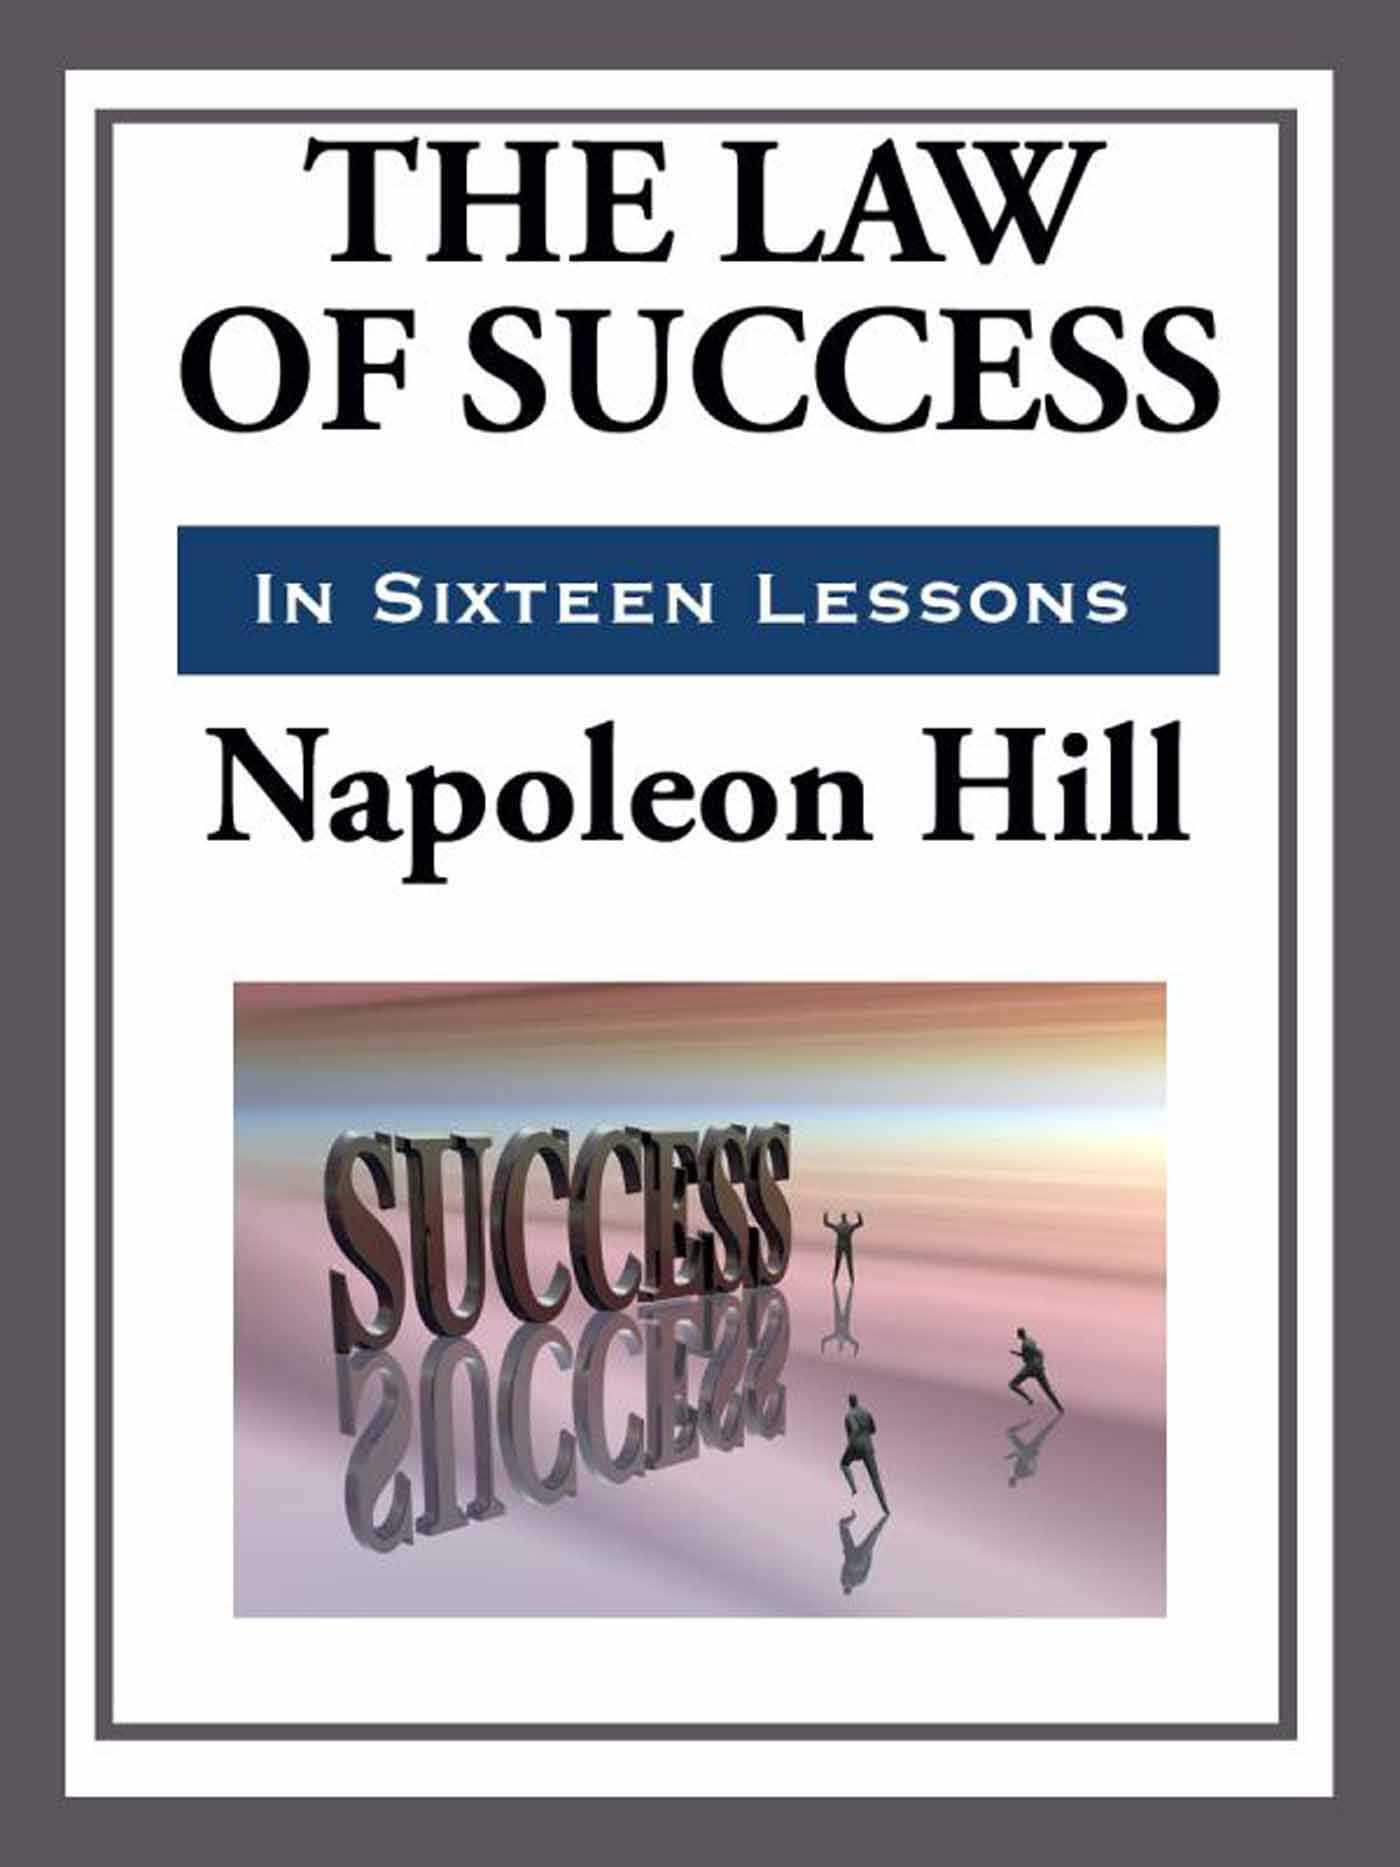 Book Cover Image (jpg): The Law of Success in Sixteen Lessons